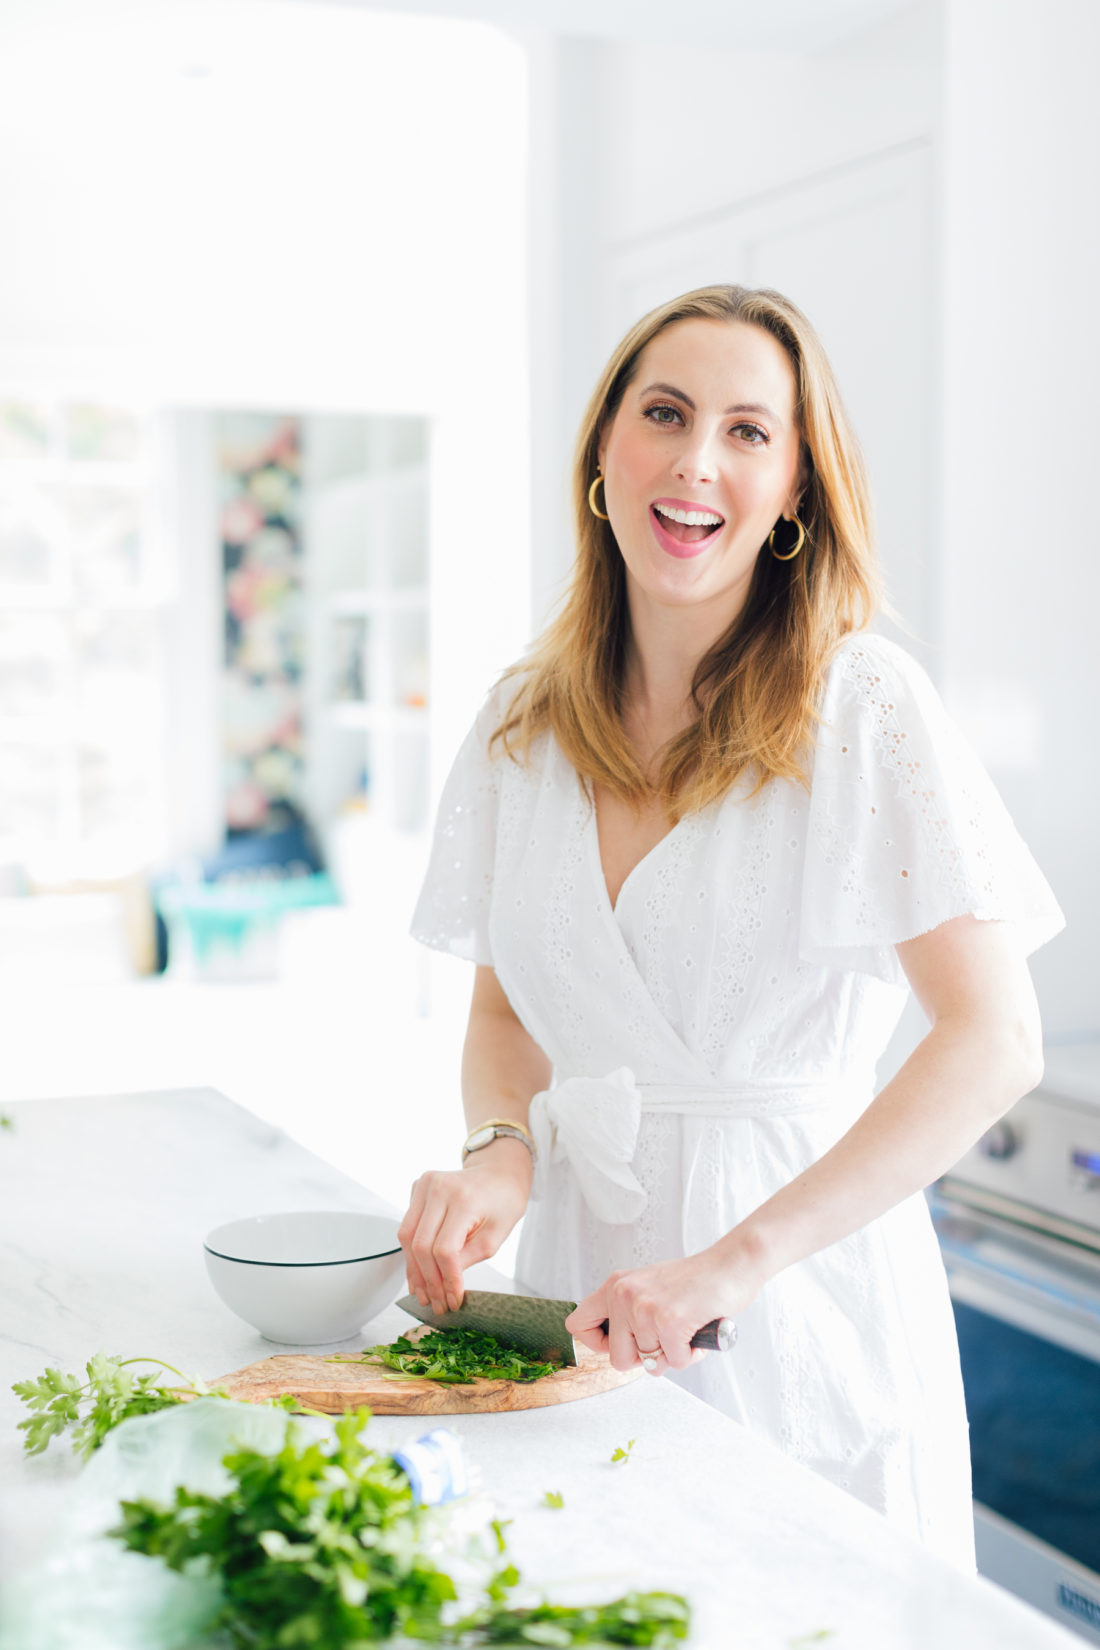 Eva Amurri Martino of Happily Eva After shares her Mother's Day Brunch table